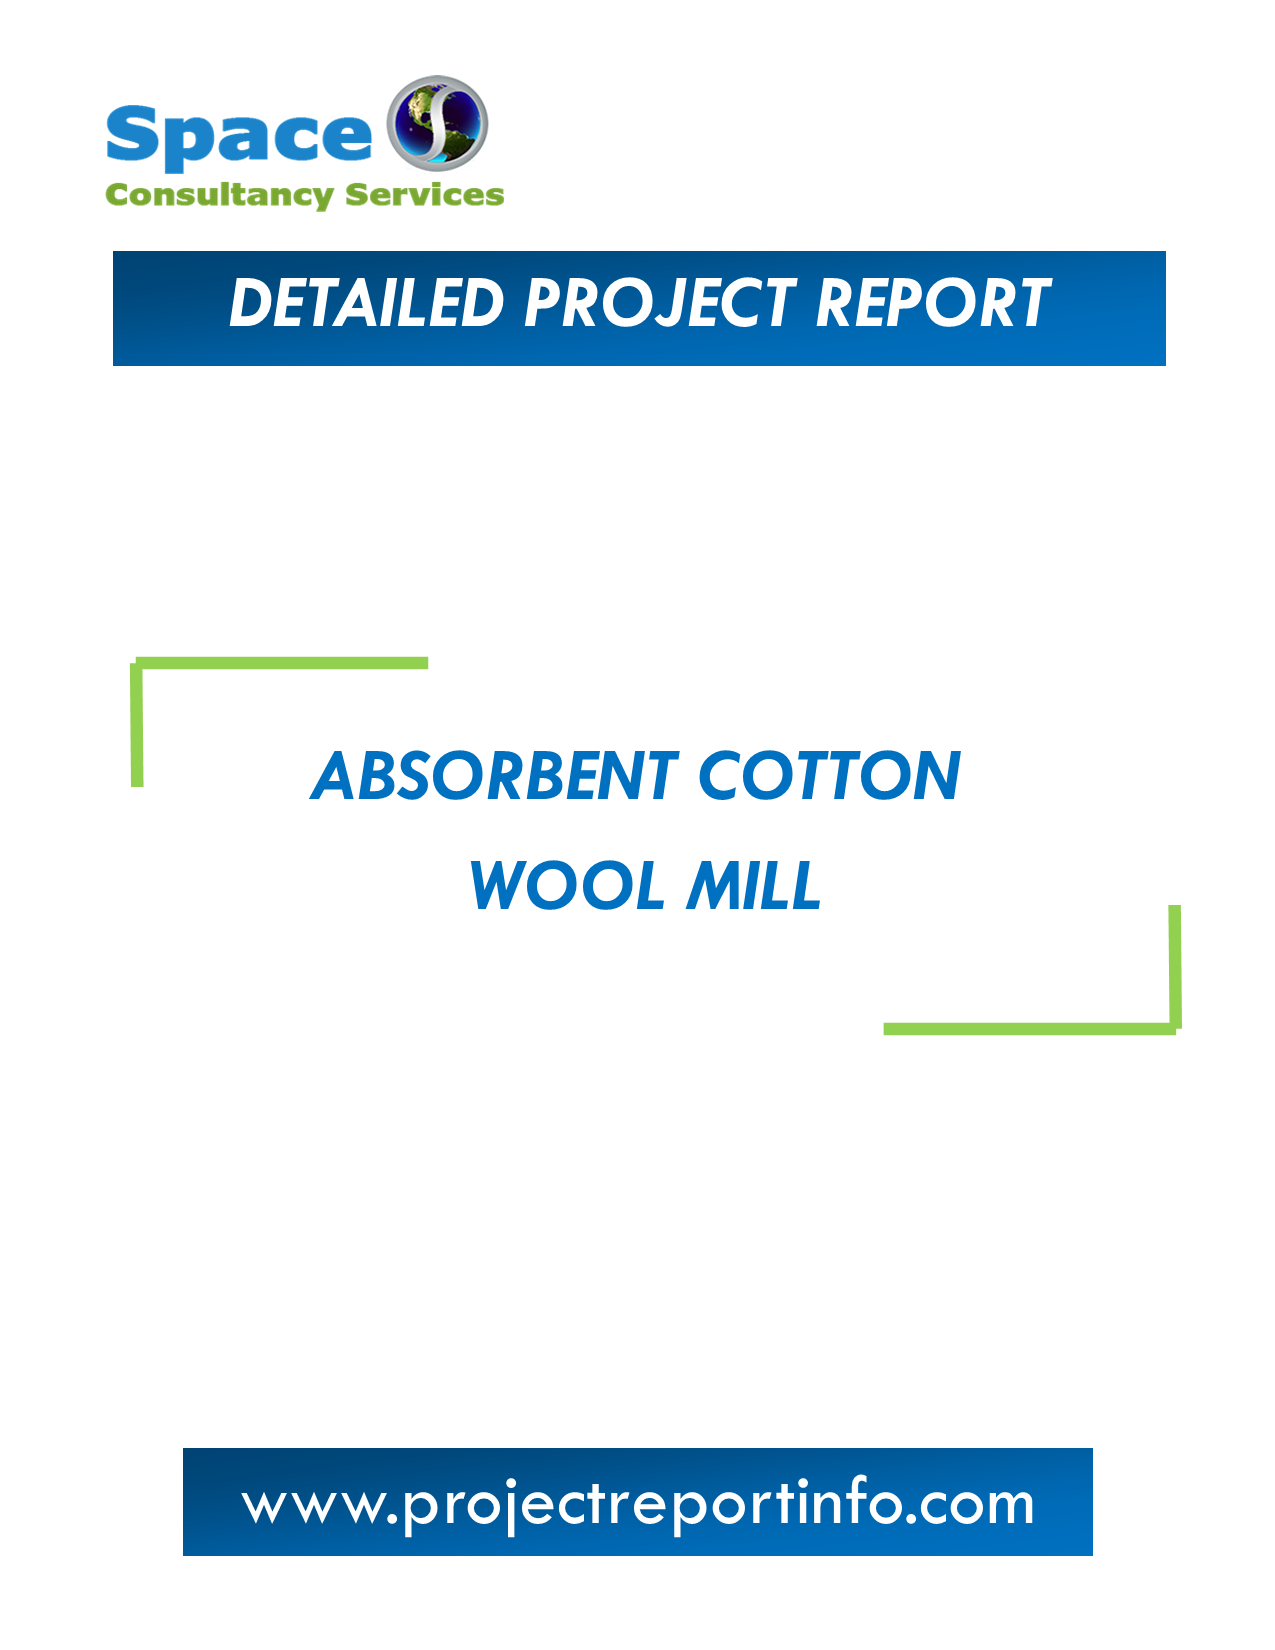 Project Report on Absorbent Cotton Wool Mill